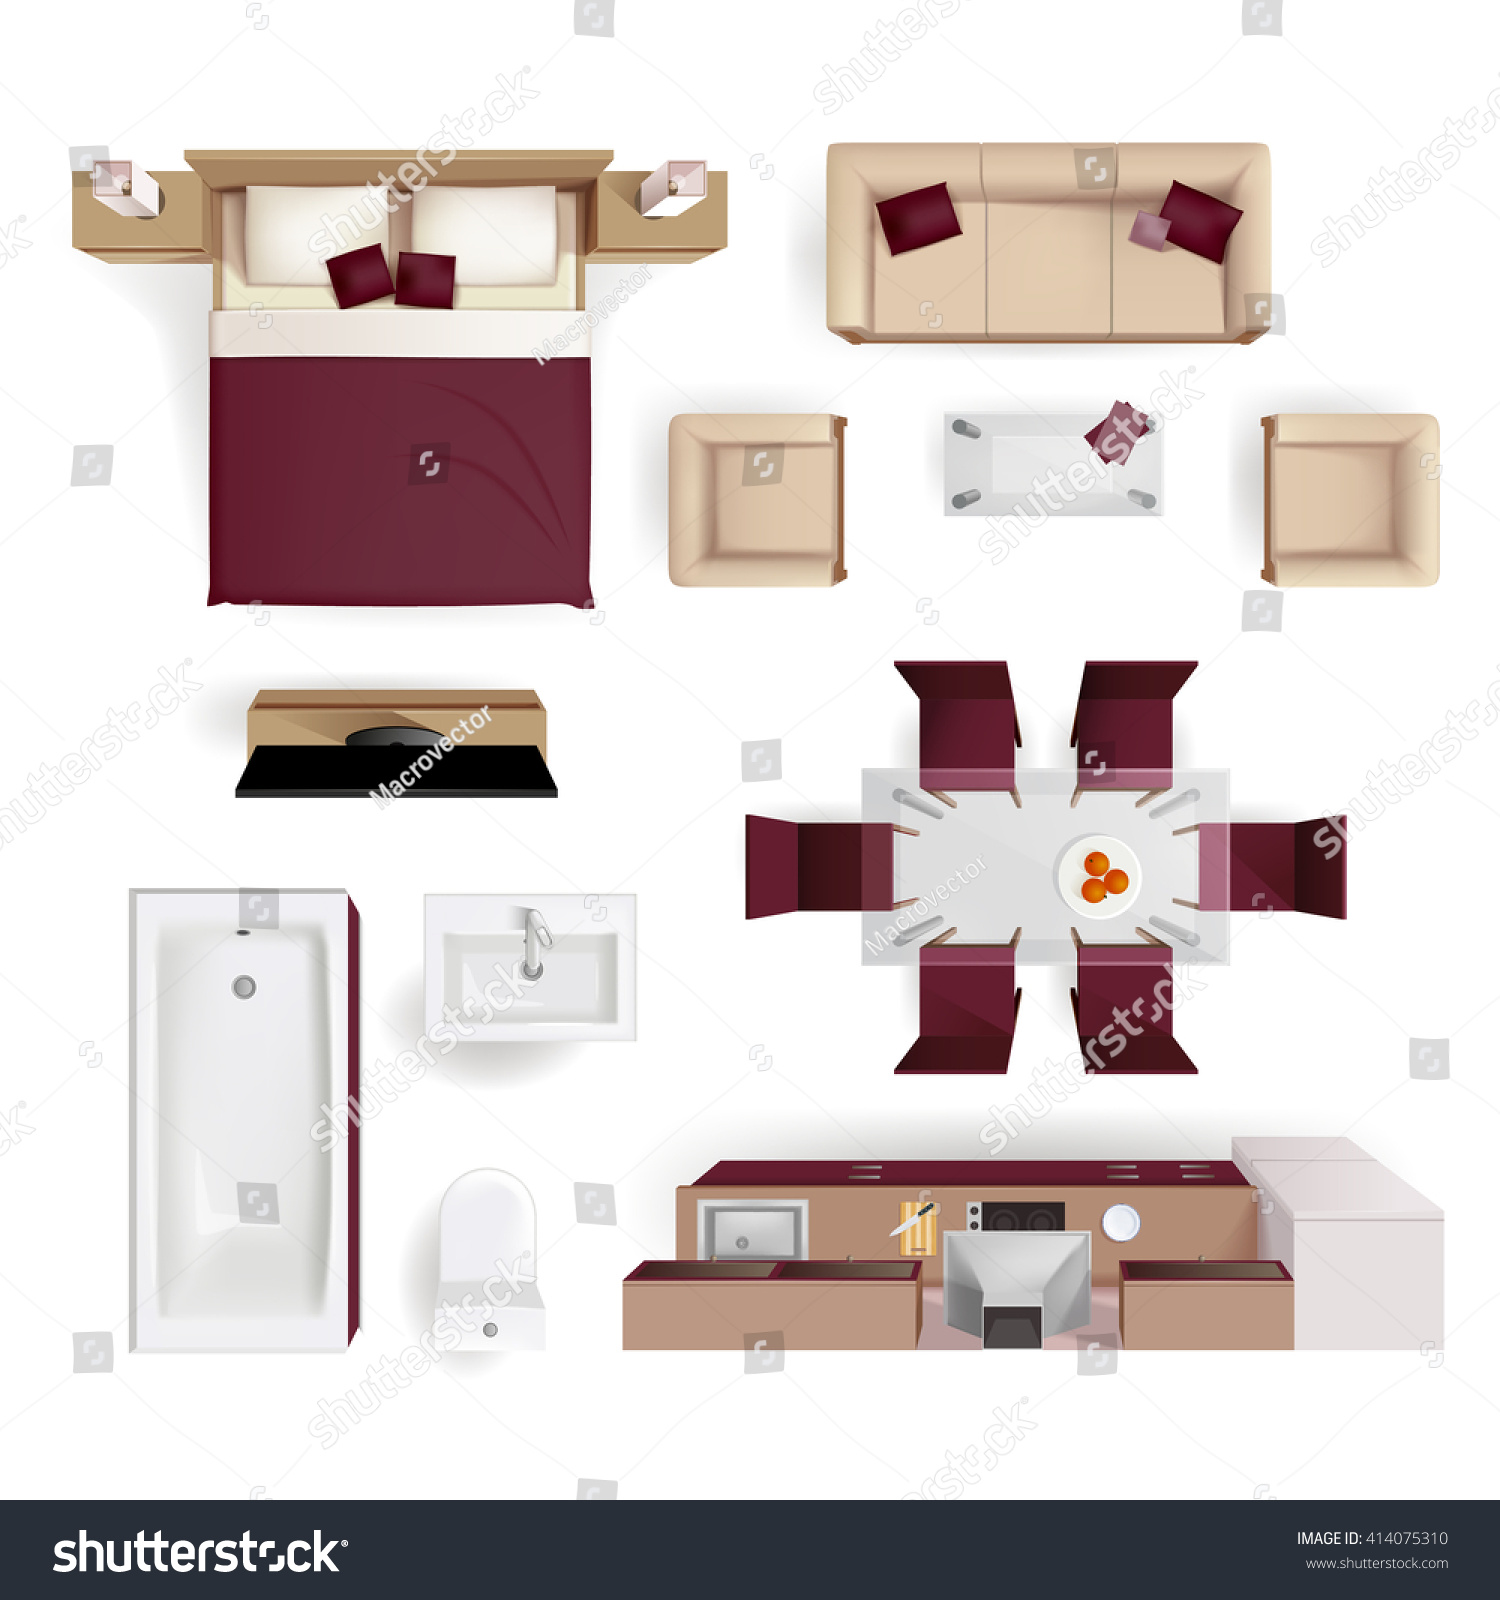 Single bedroom top view - Modern Apartment Living Room Bedroom And Bathroom Furniture Design Elements Top View Image Realistic Vector Illustration